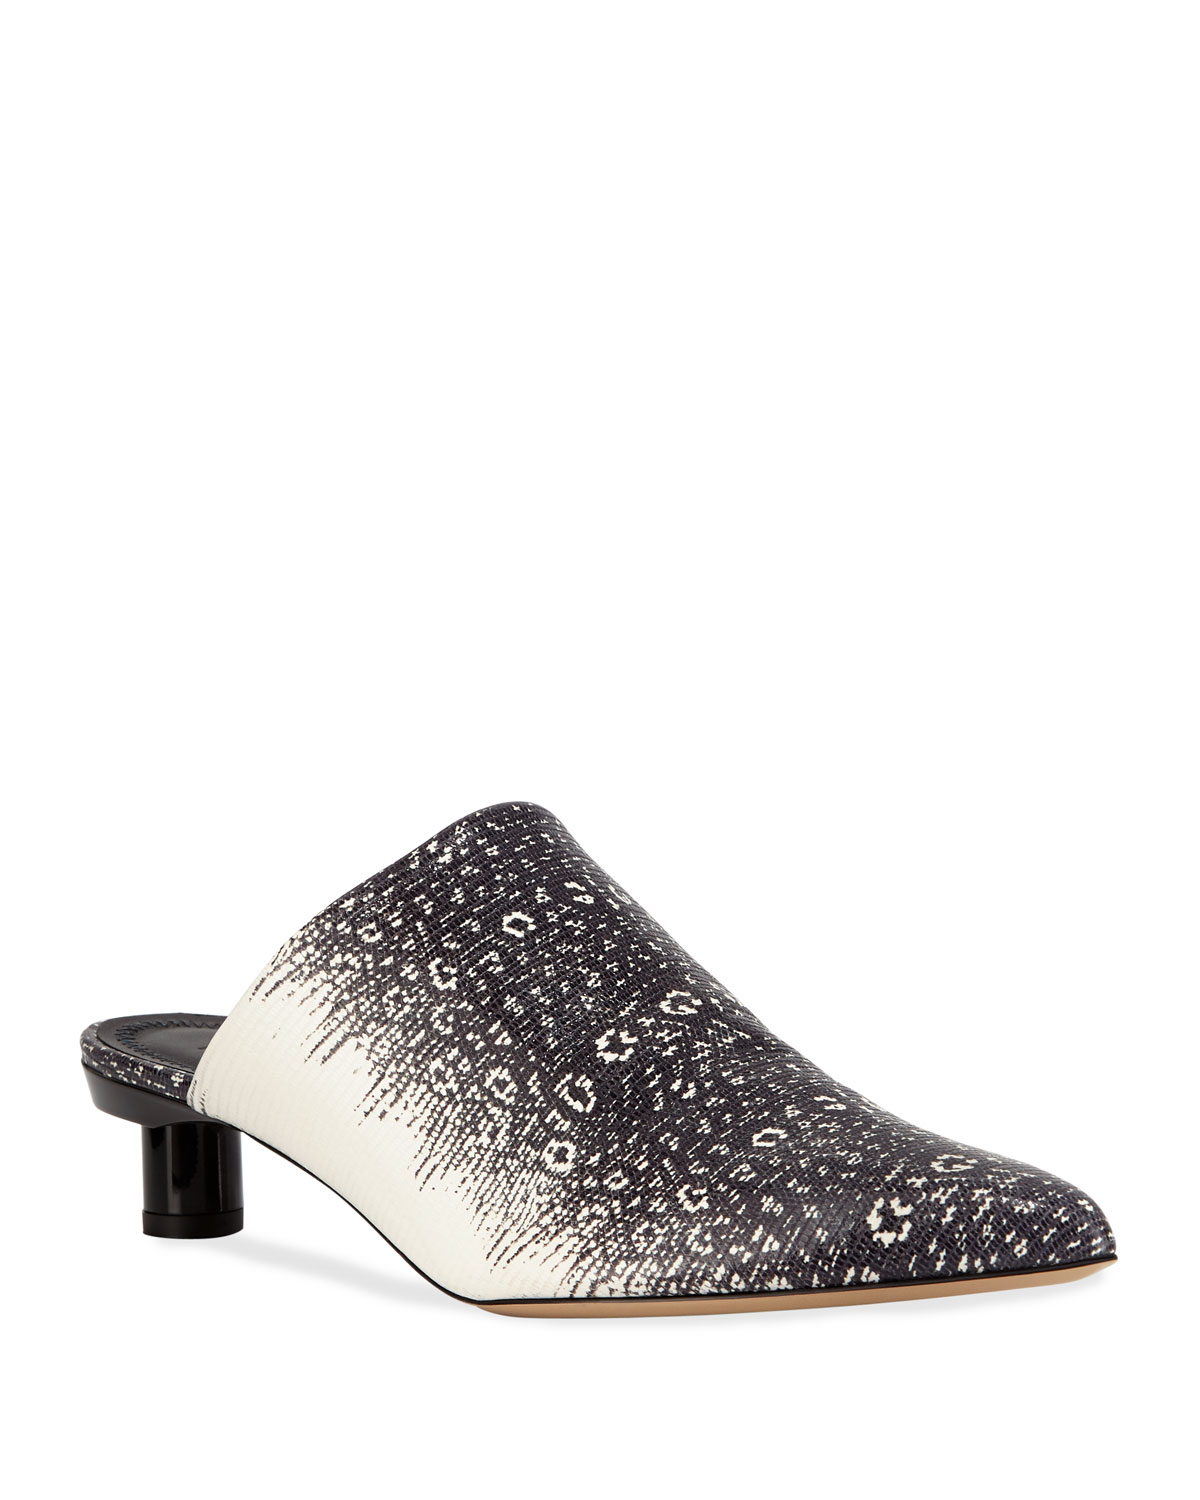 Tibi Mules JUAN LIZARD-EMBOSSED LEATHER MULES